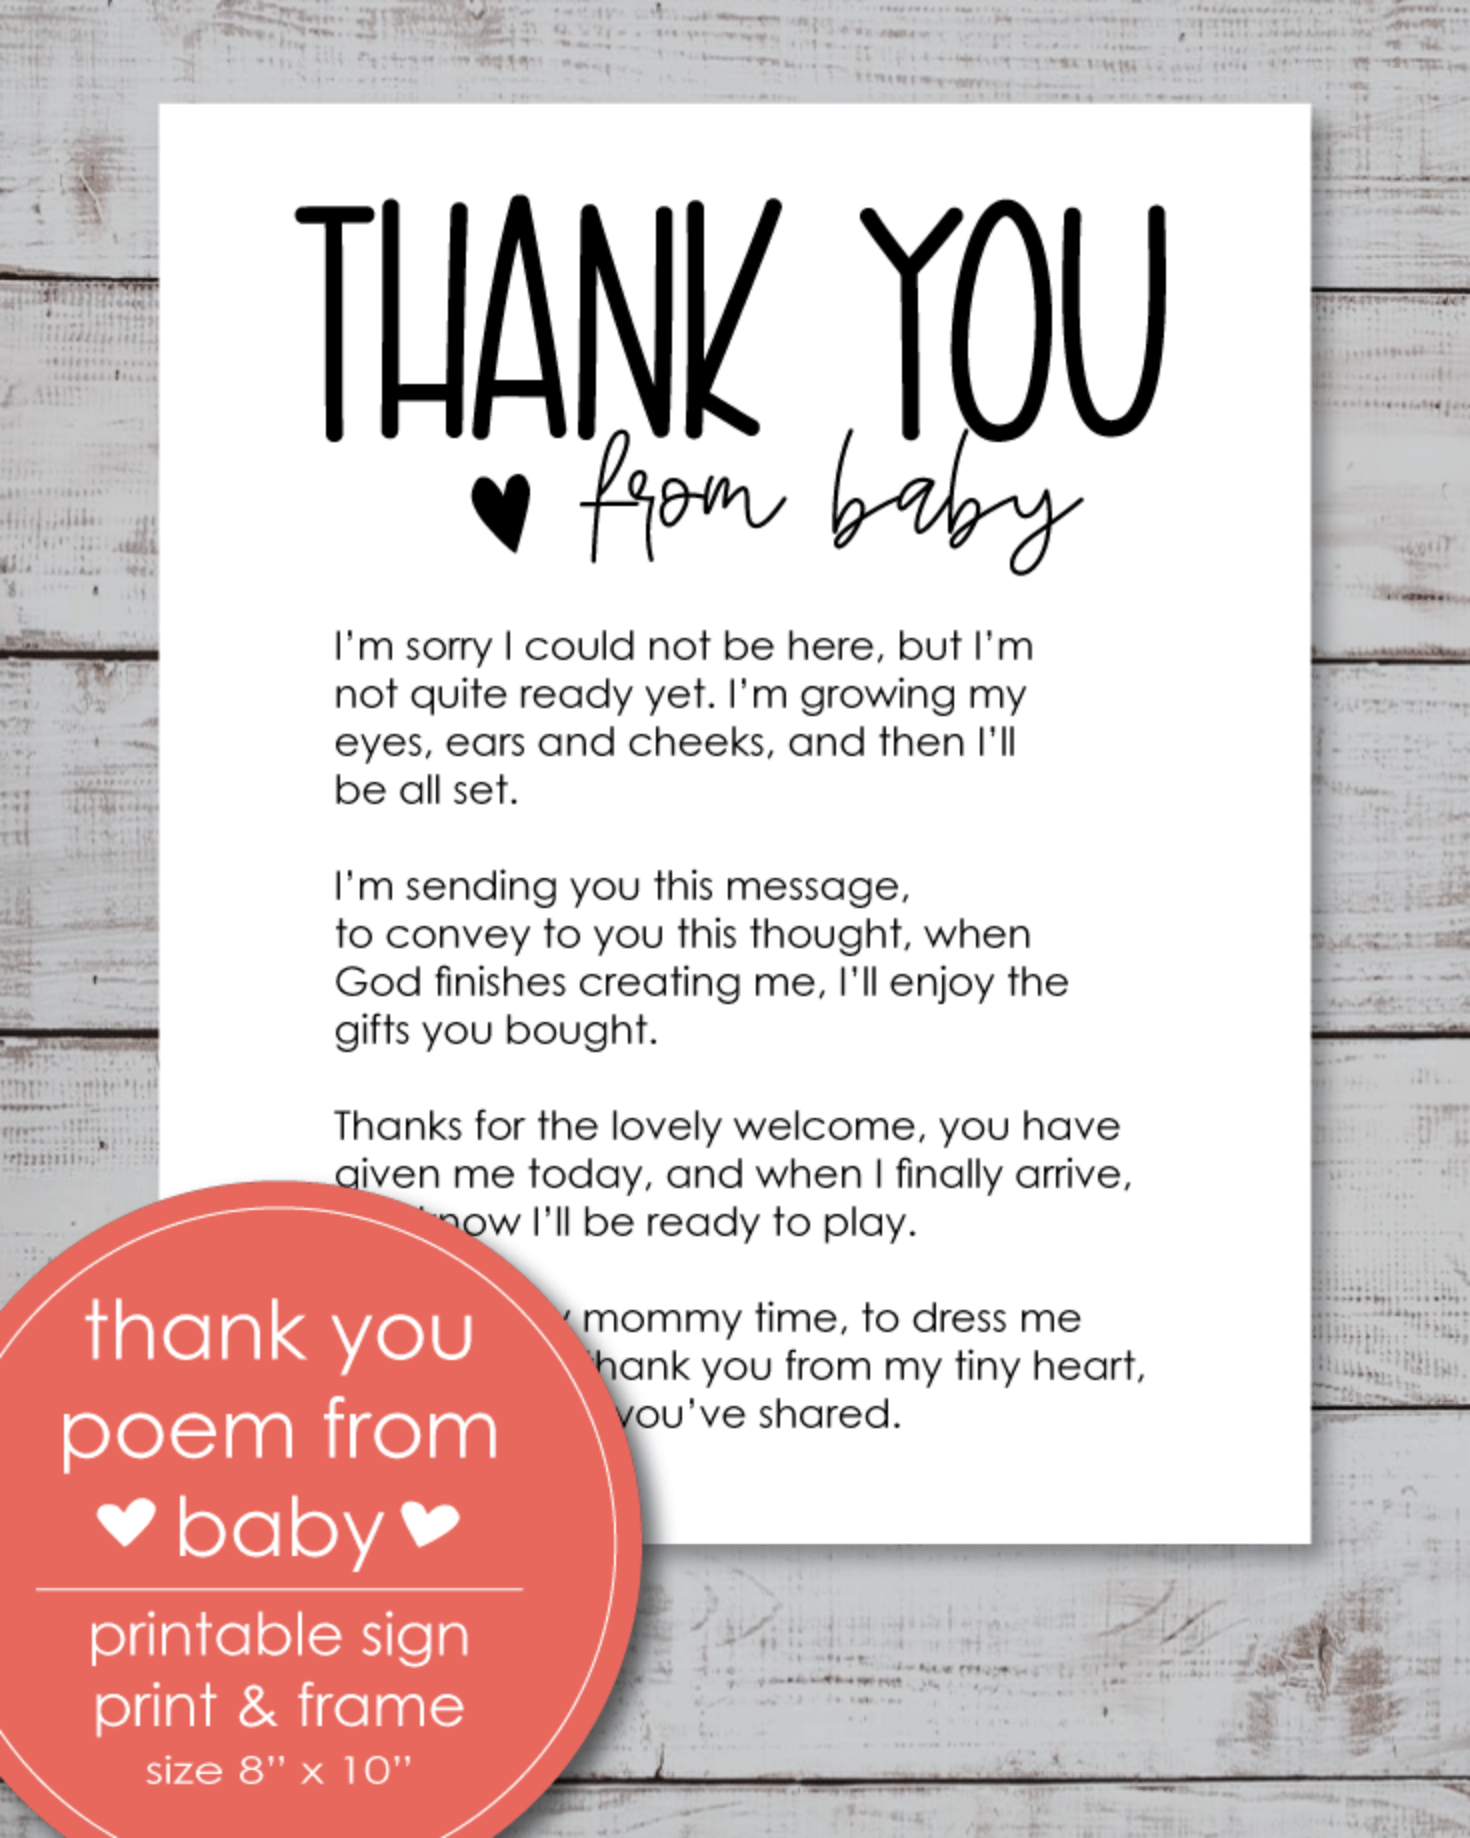 Printable Thank You Poem From Baby 8x10